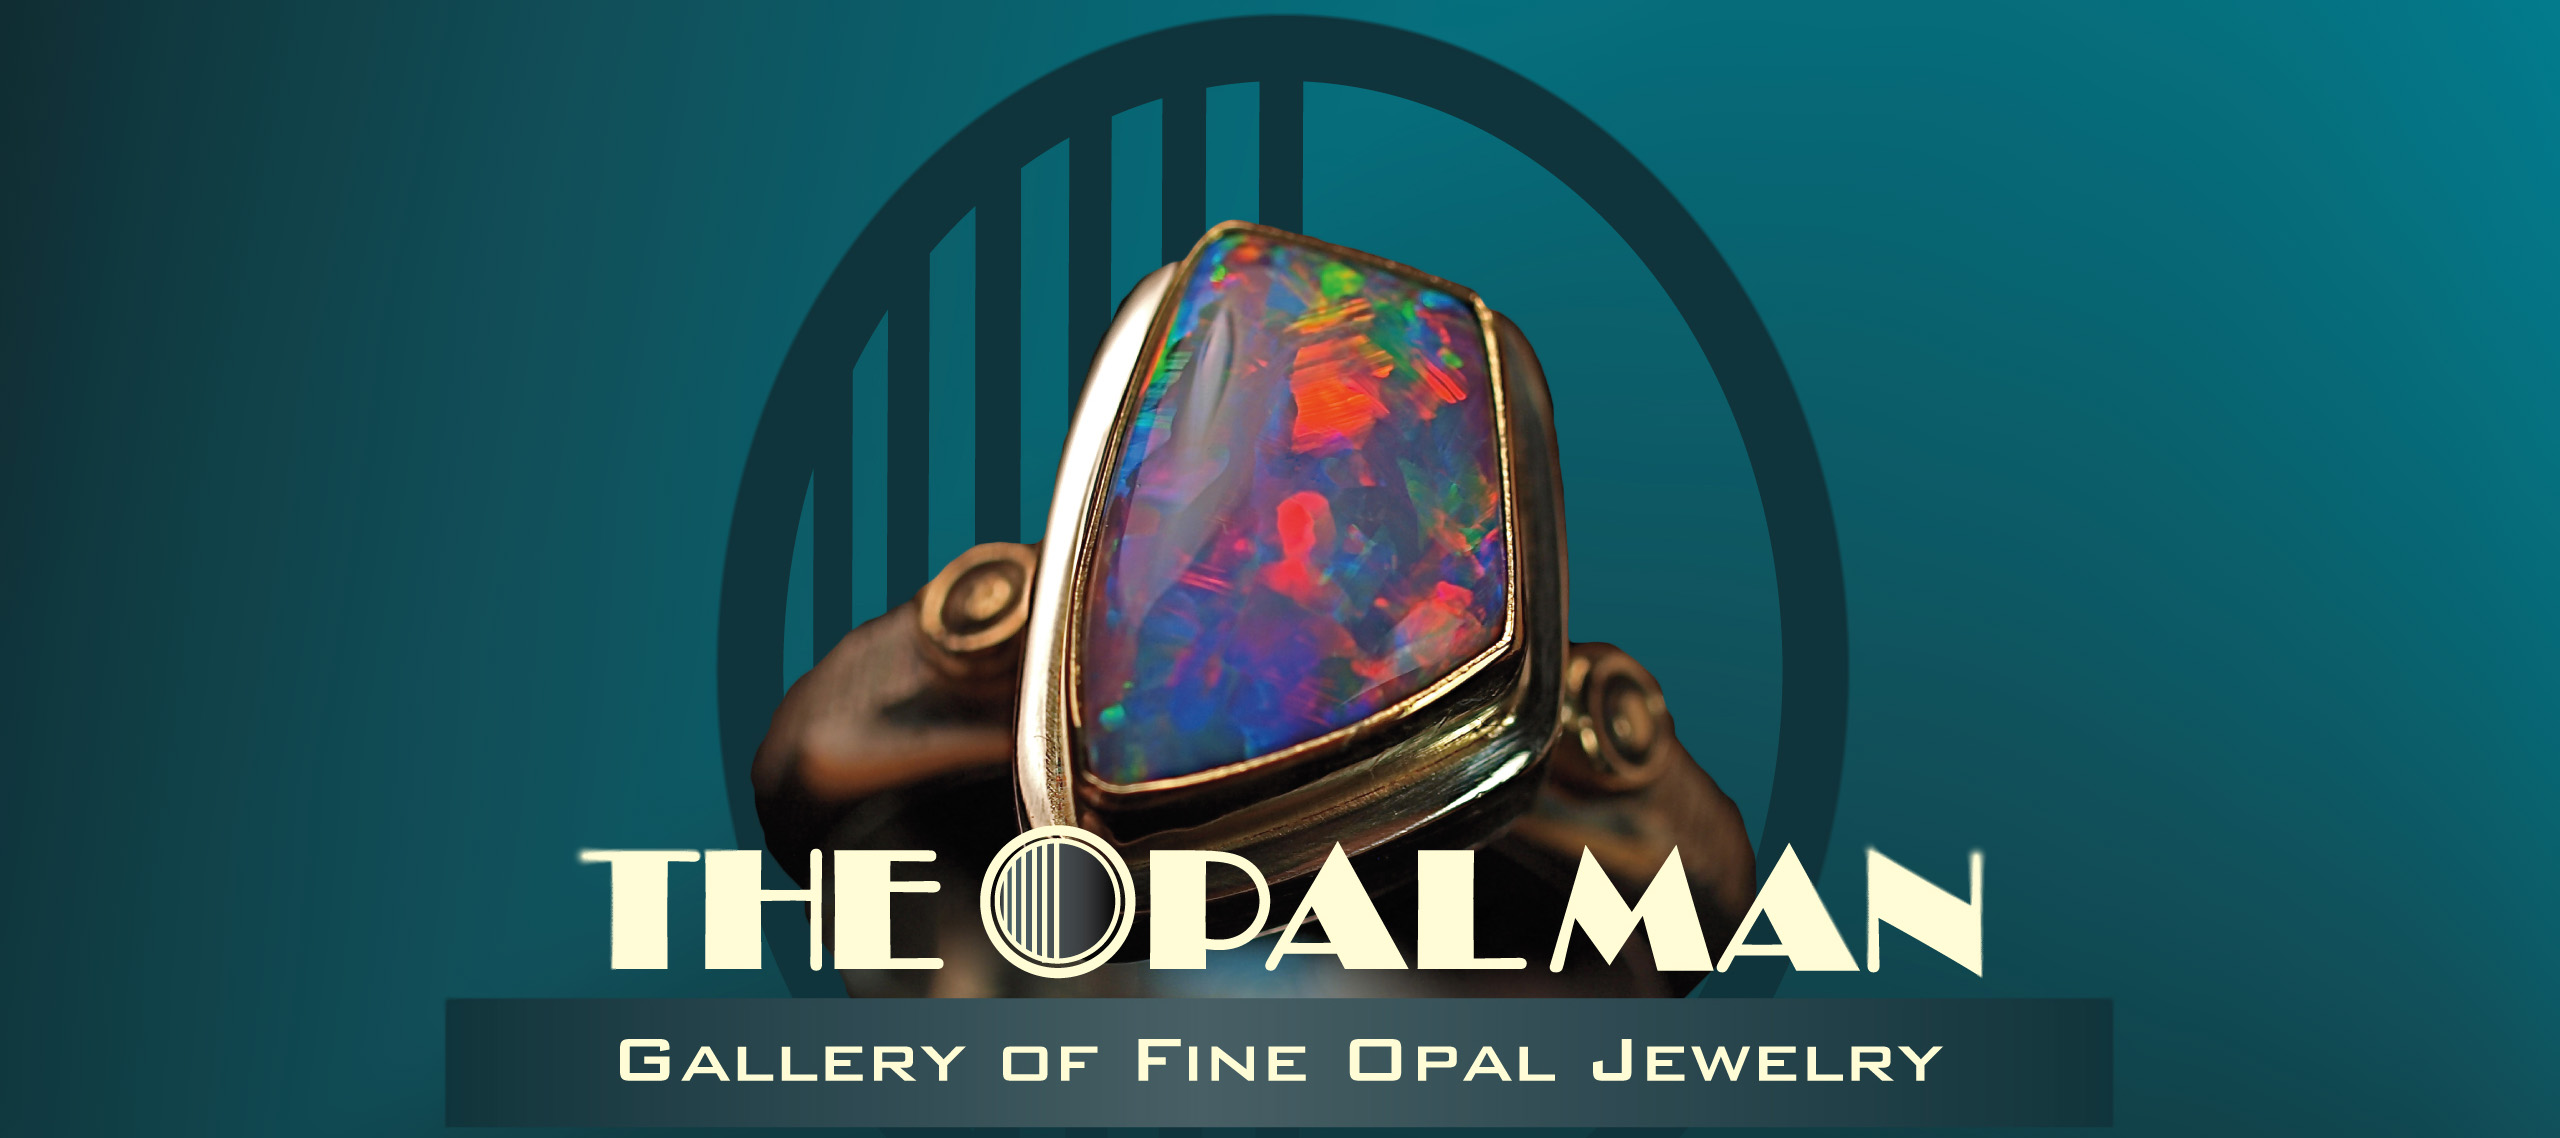 The Opal Man, Spring Green, Wisconsin